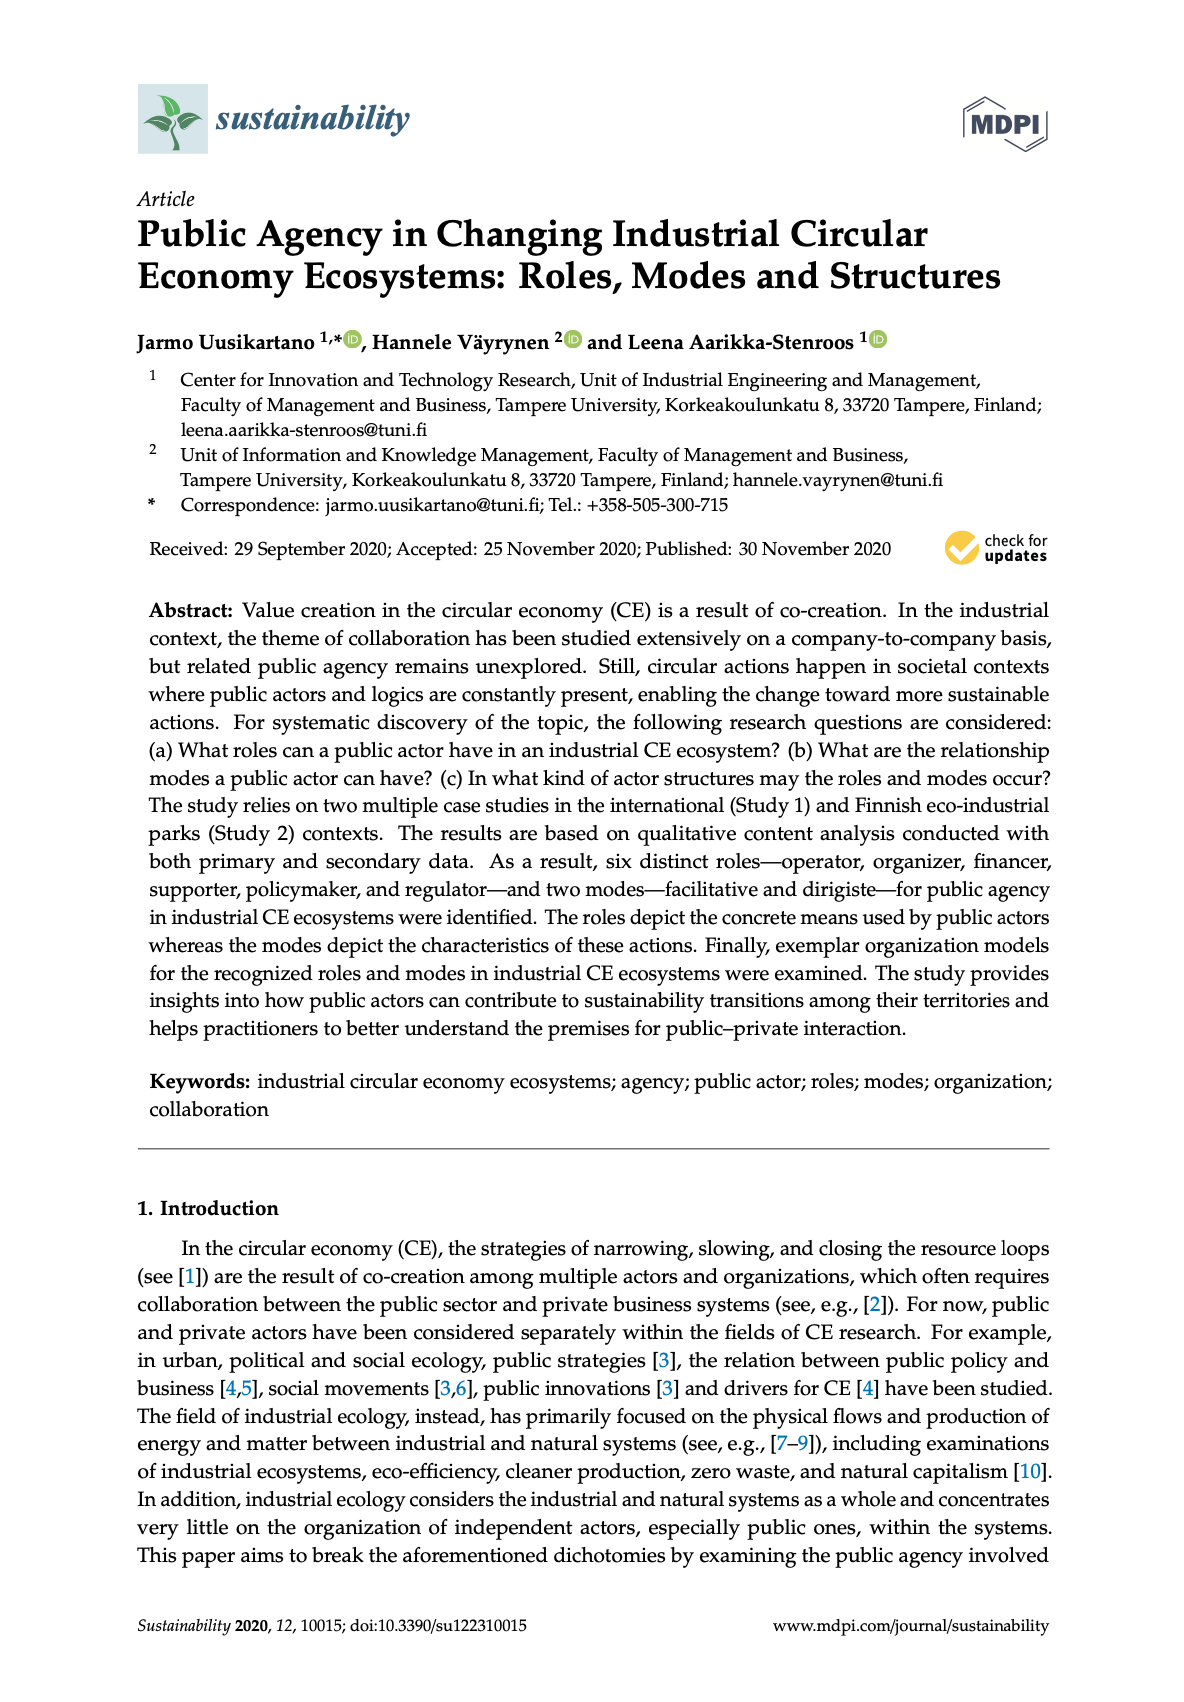 Cover for article 'Public Agency in Changing Industrial Circular Economy Ecosystems: Roles, Modes and Structures'